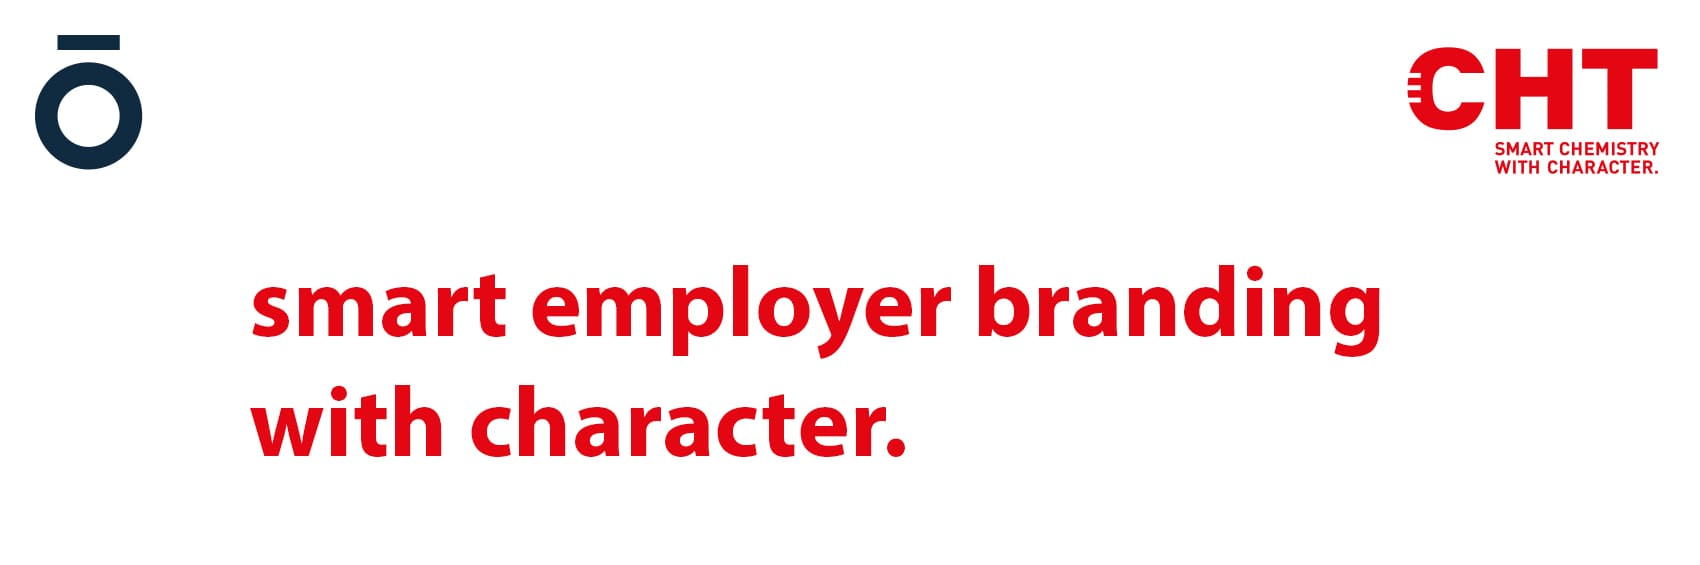 Internationales Employer Branding für CHT